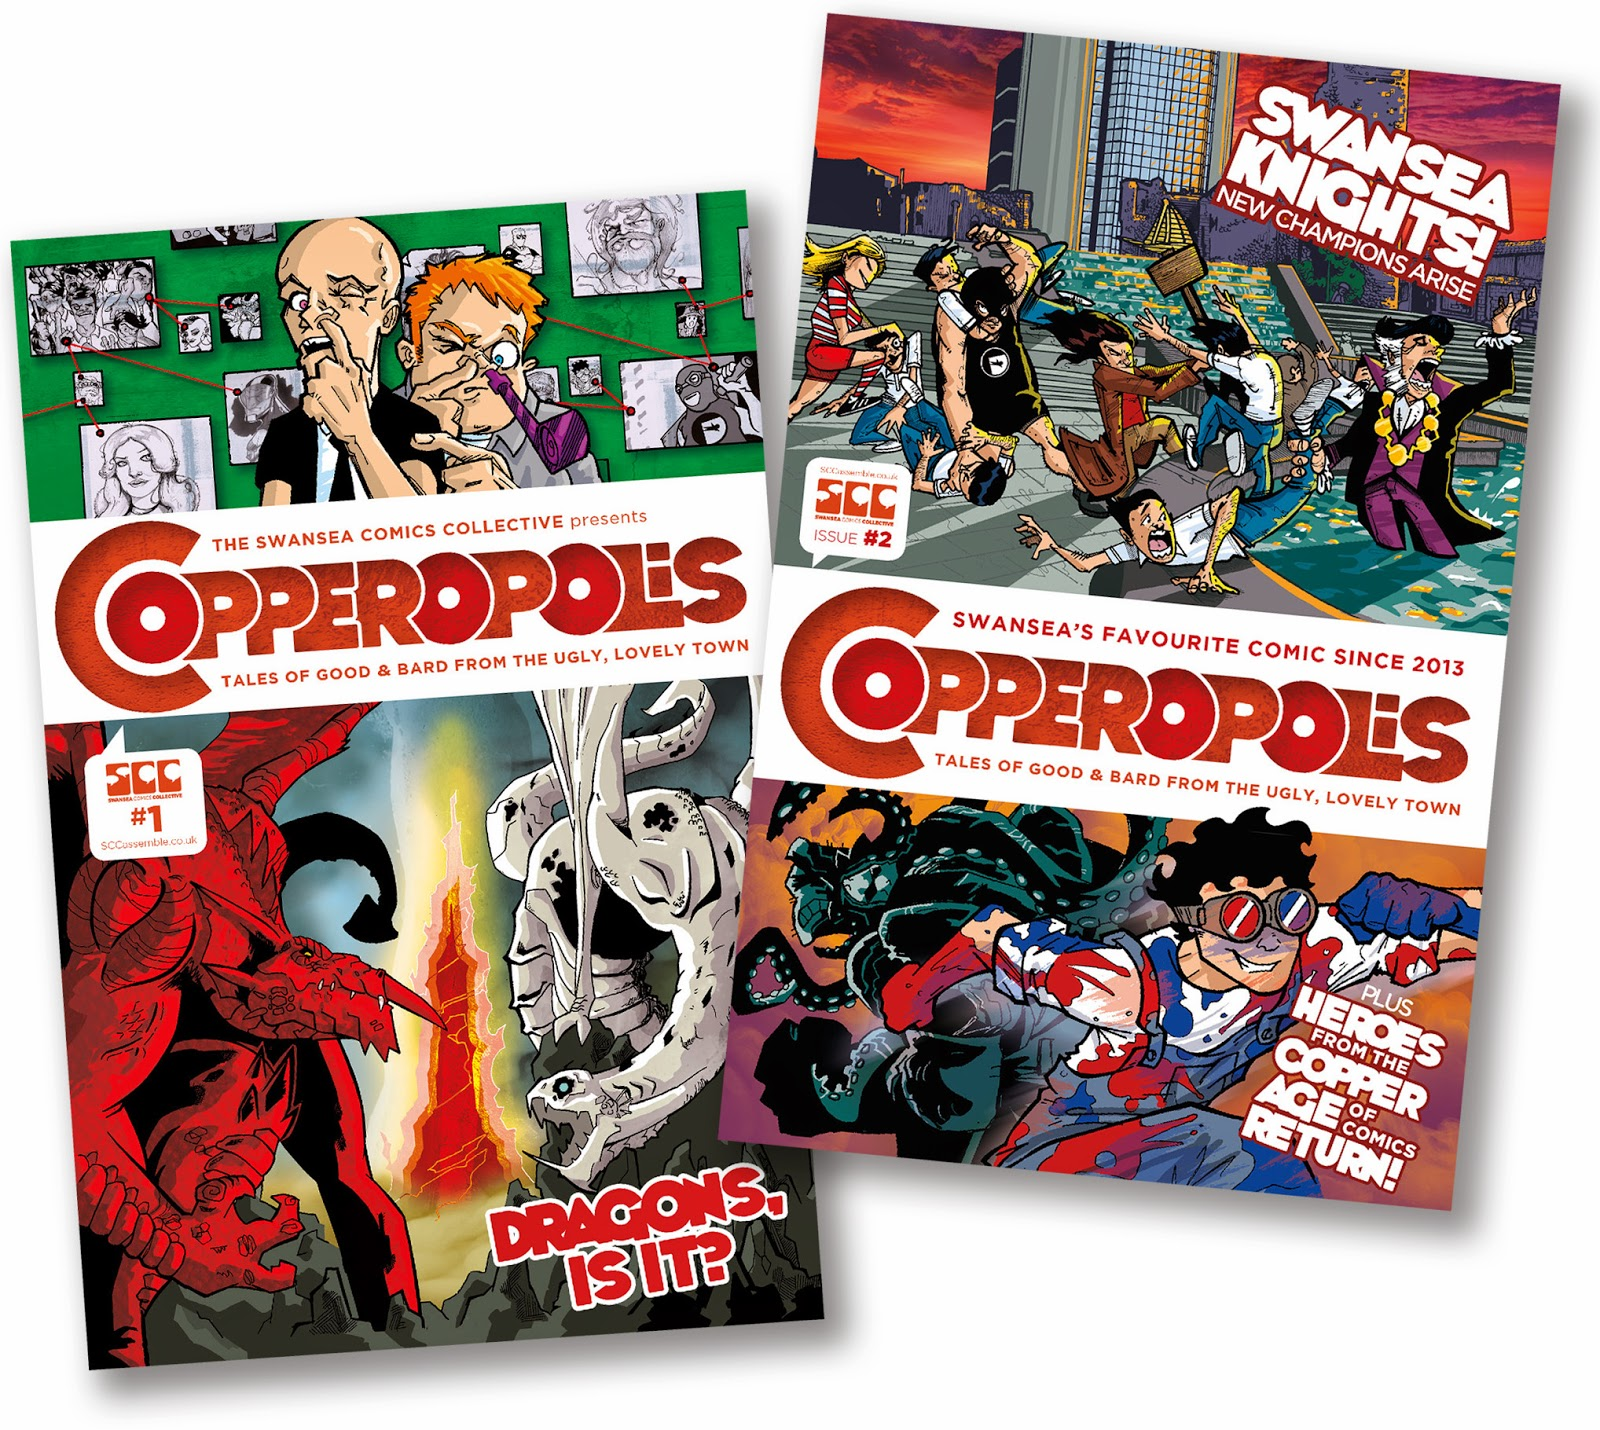 Copperopolis comic - issues one and two available now